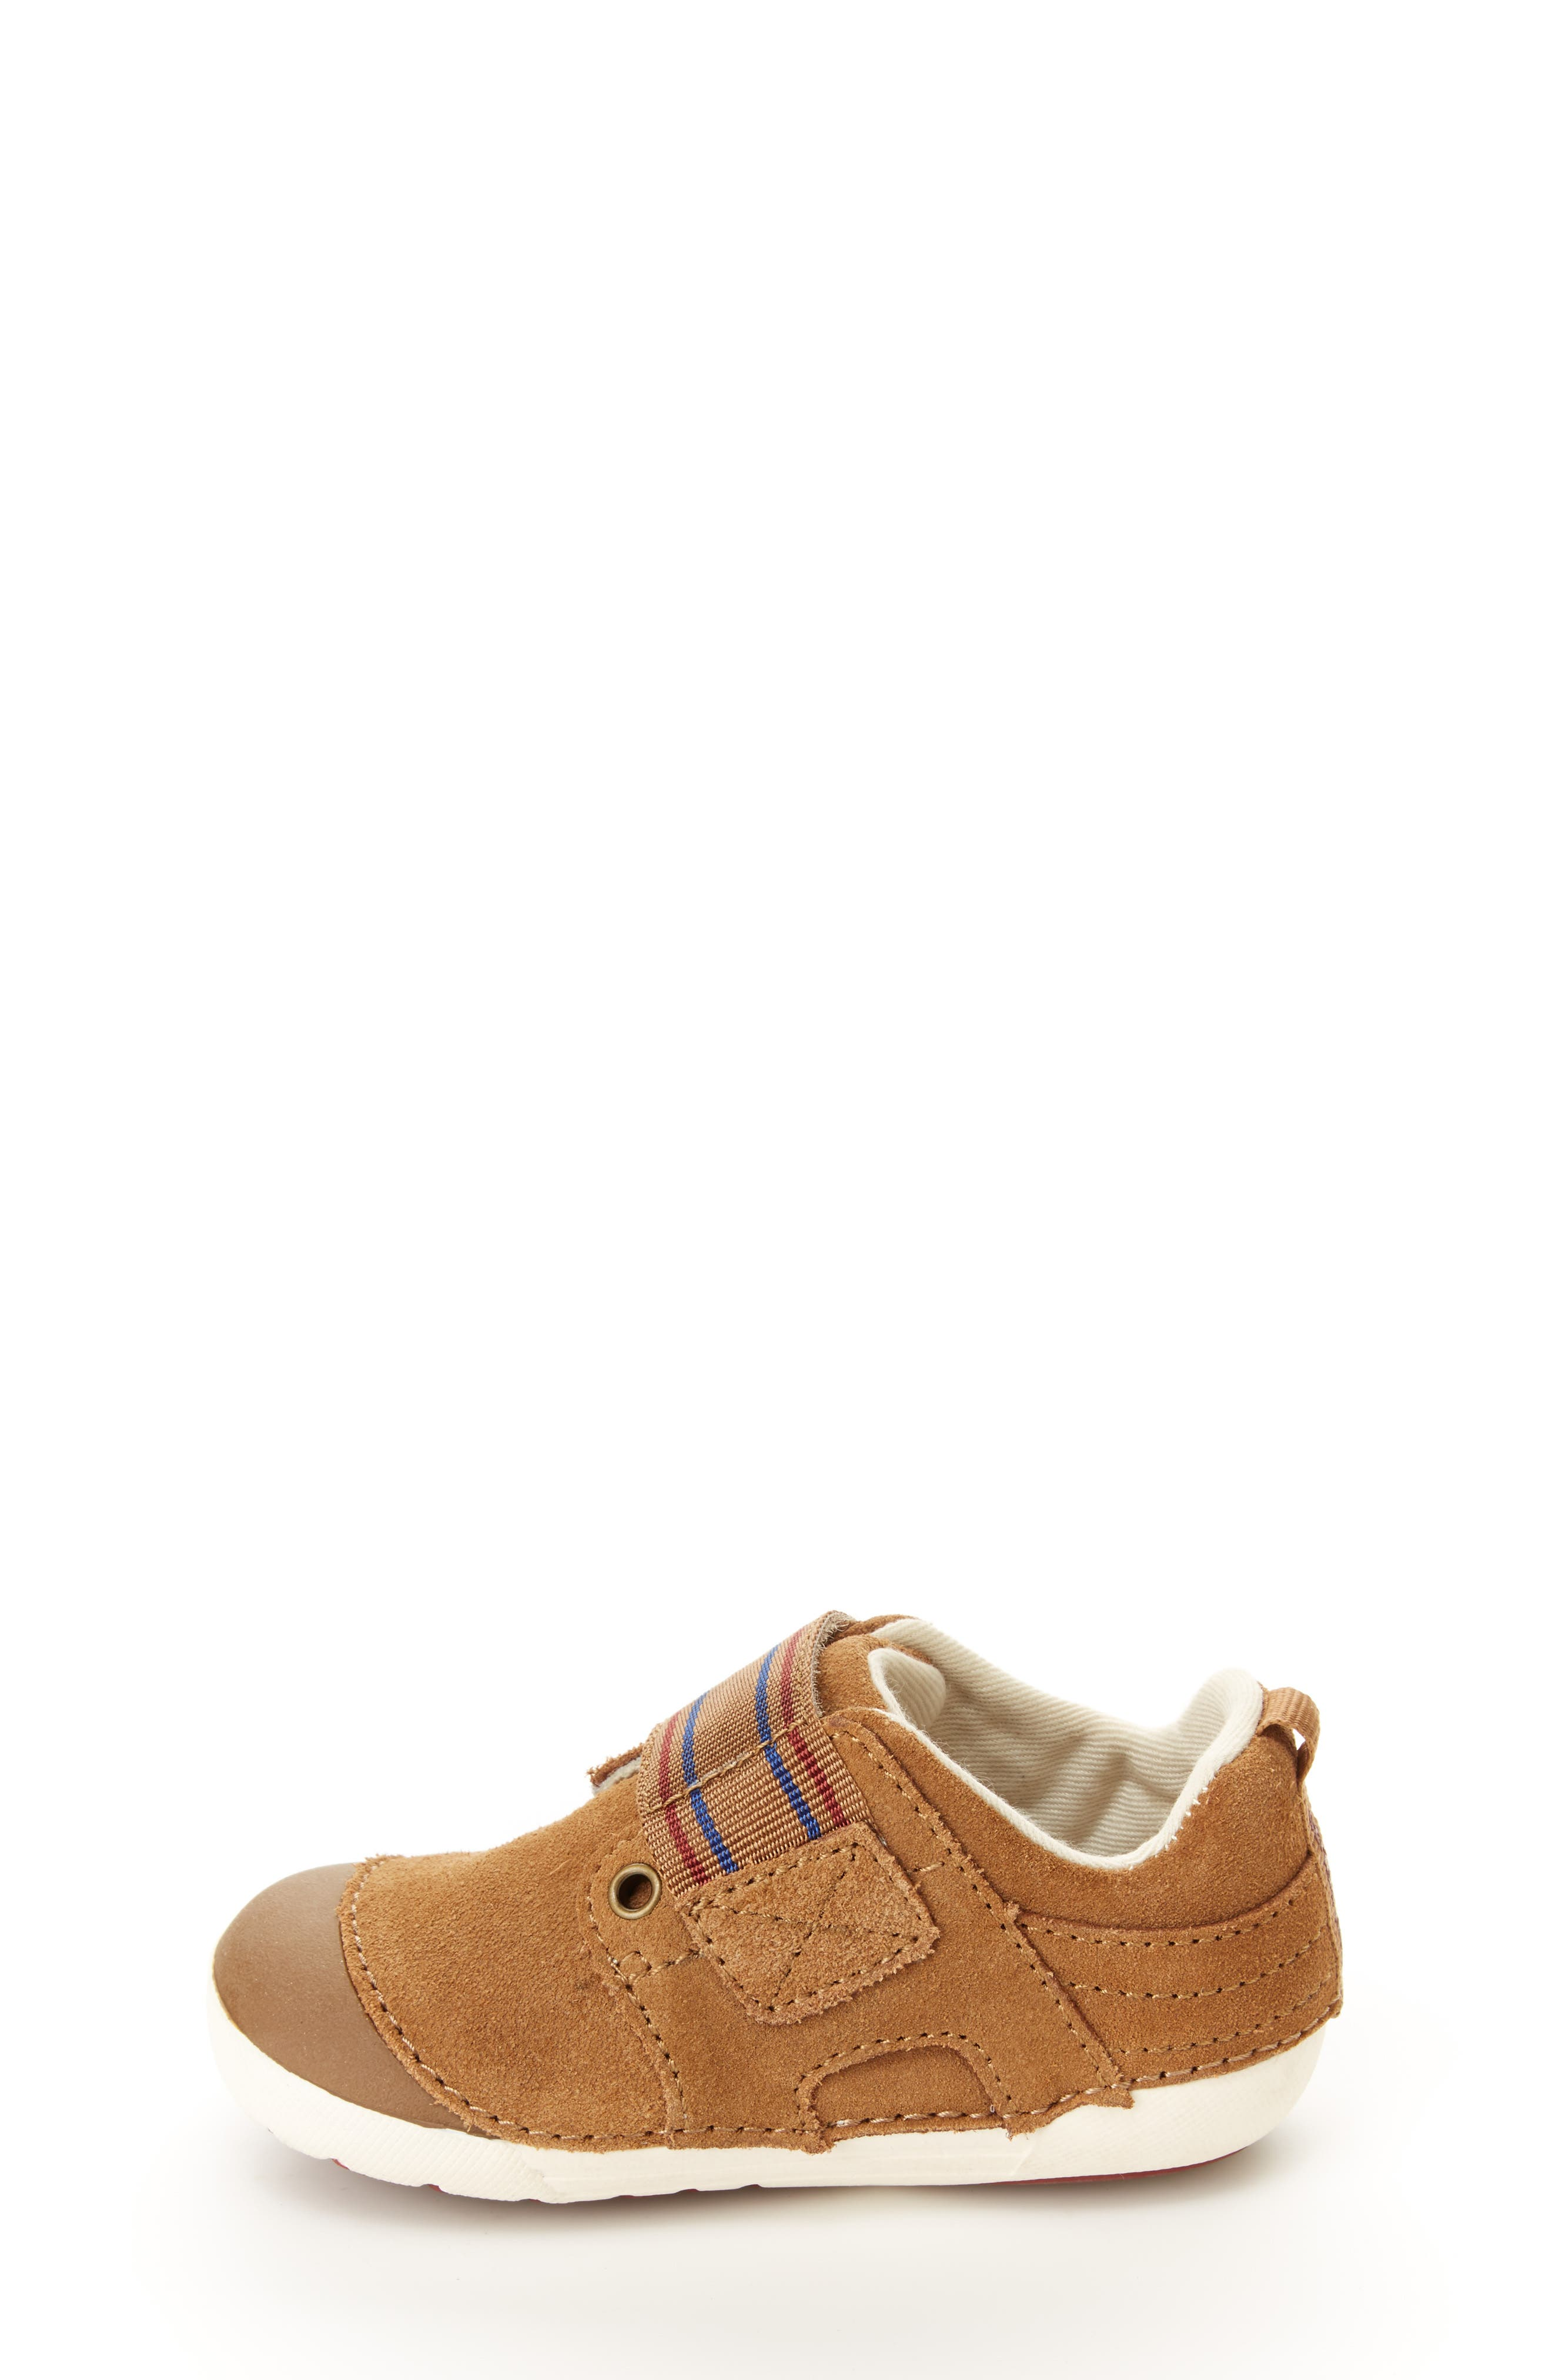 STRIDE RITE, Soft Motion<sup>™</sup> Cameron Sneaker, Alternate thumbnail 7, color, BROWN